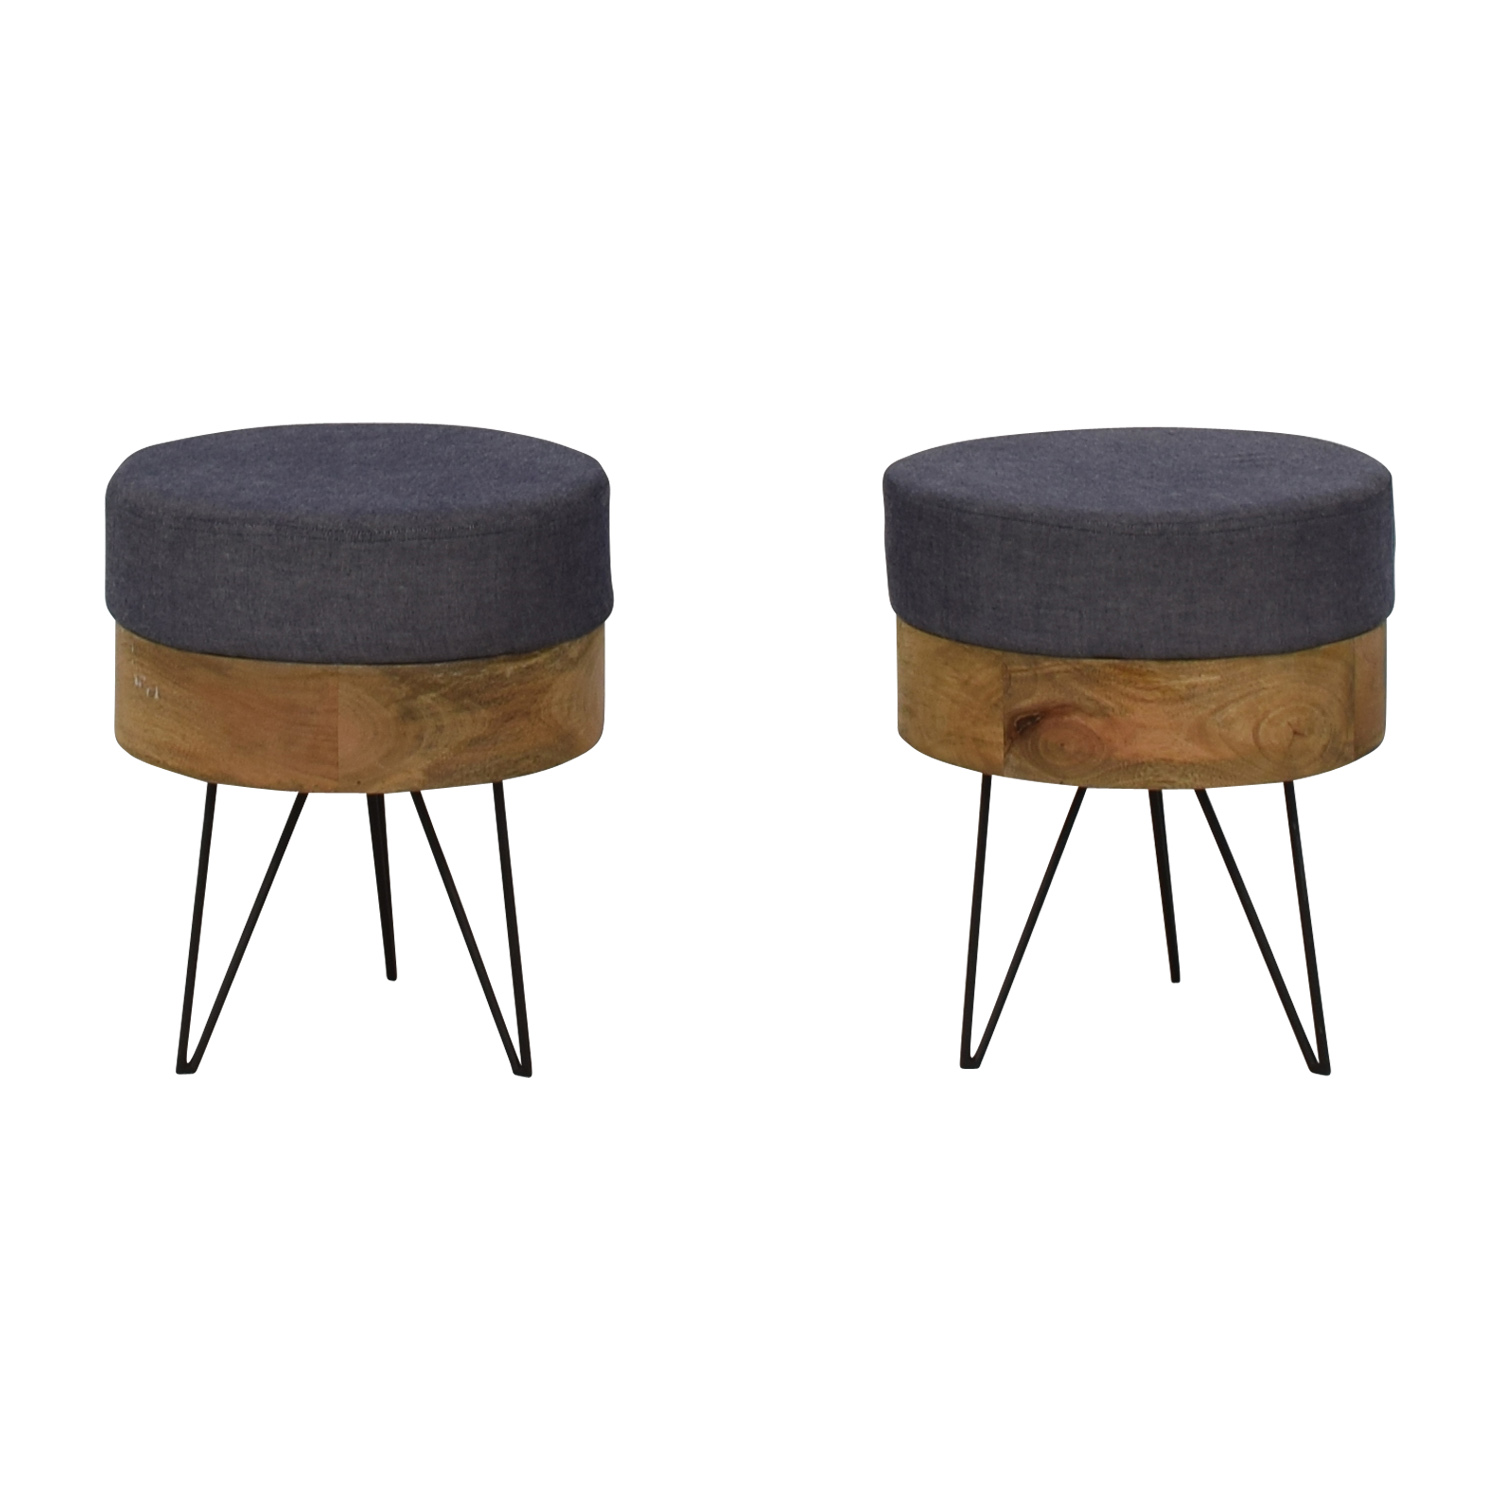 buy Moe's Home Collection Chambray and Wood Round Stools Moe's Home